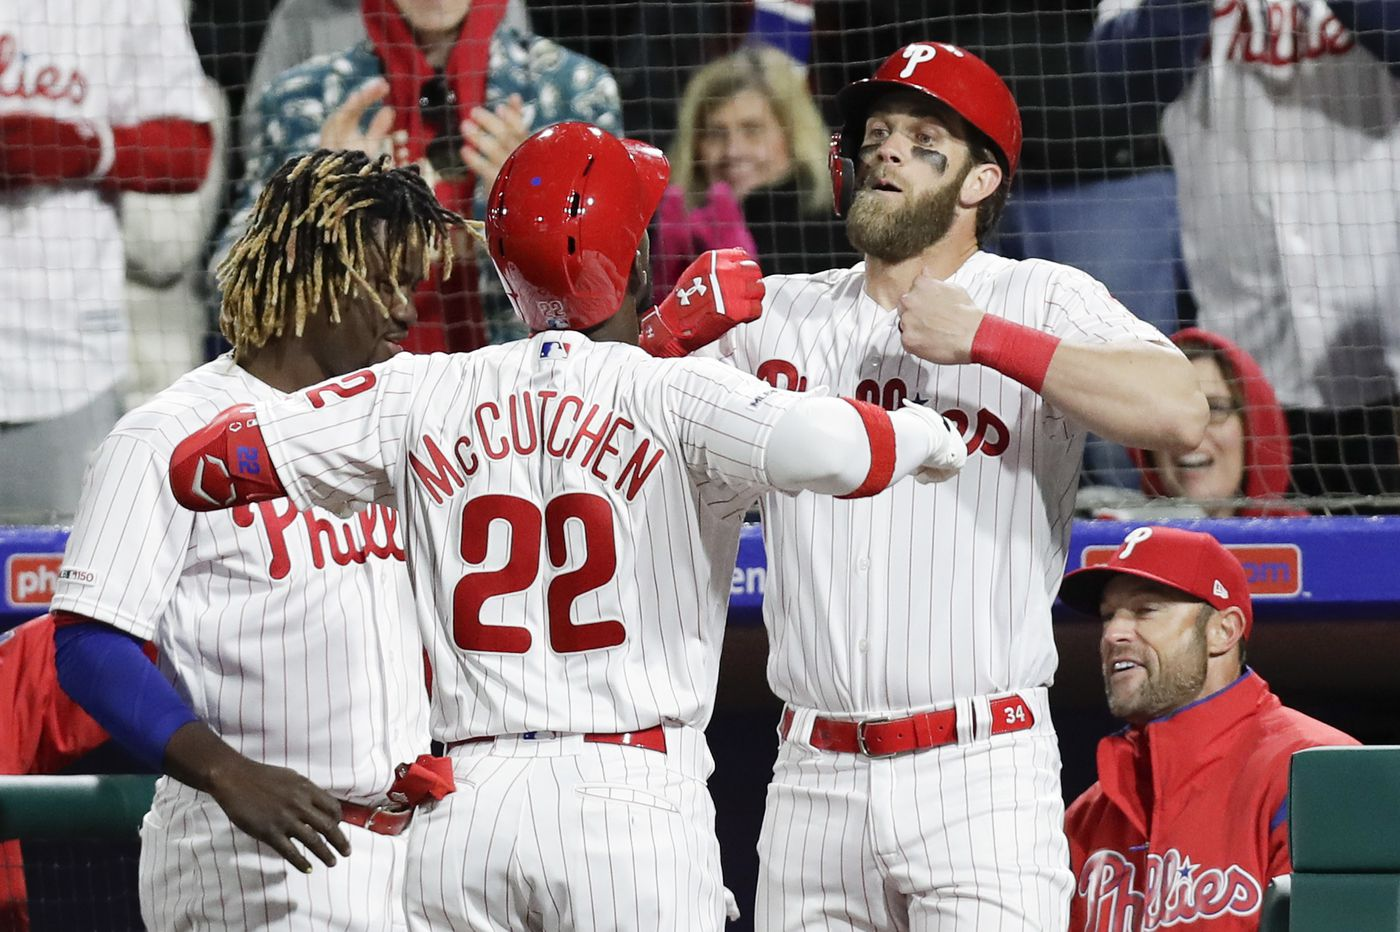 Phillies podcast: After making a big impression in Philly, how will Bryce Harper be received in D.C.?